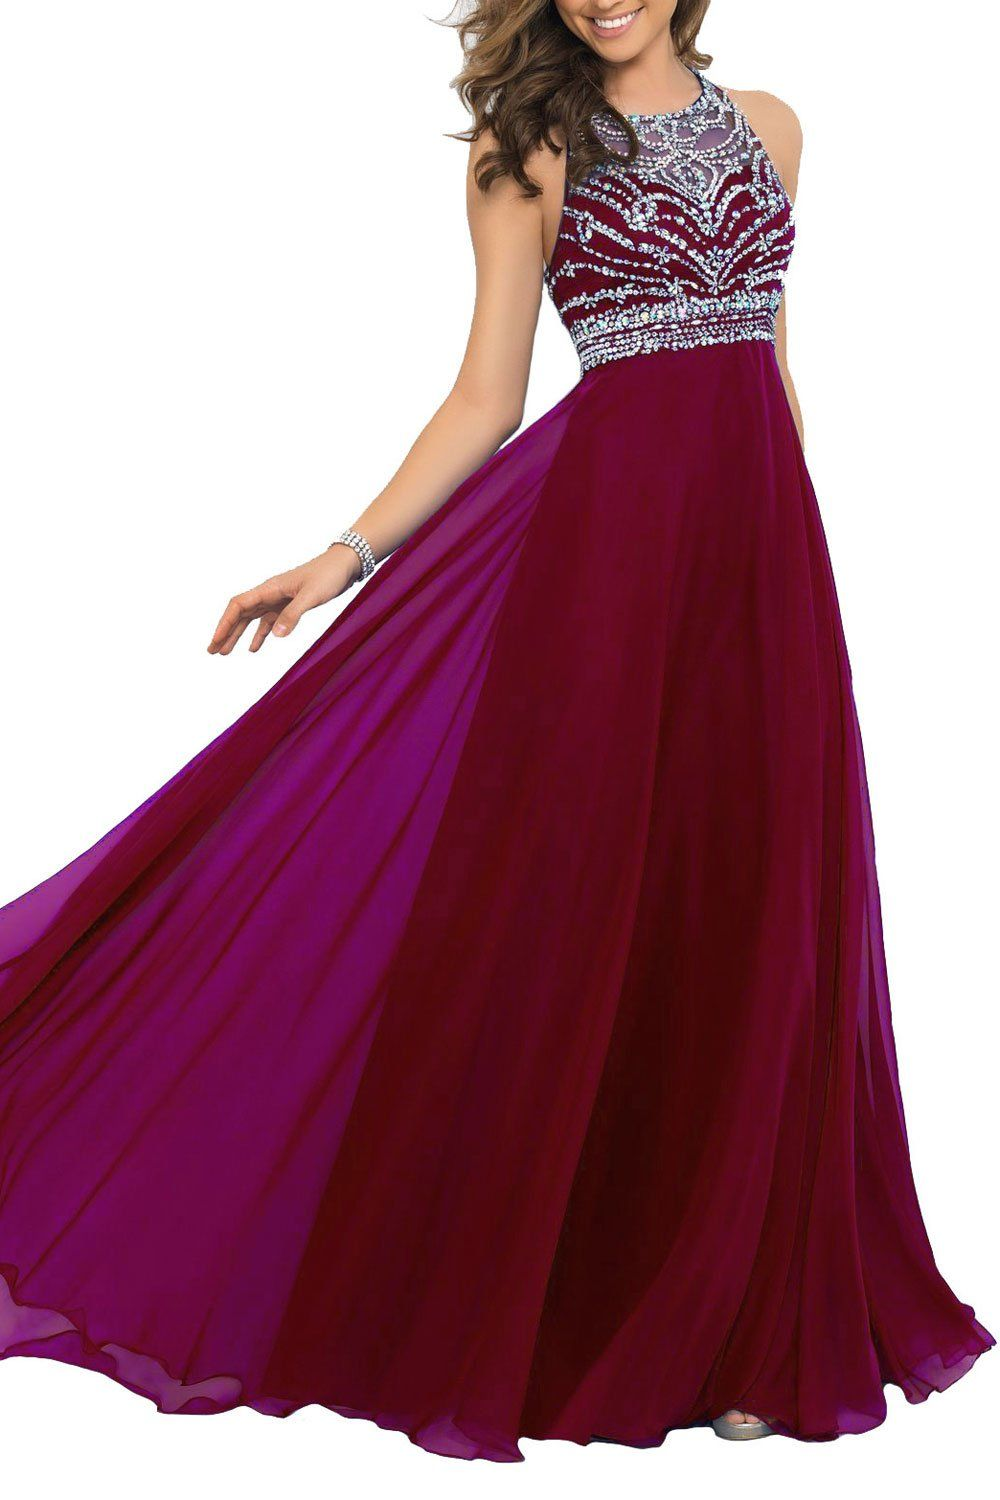 233ae40e7d25 Artie Gorgeous A-line Floor Length Chiffon Prom Dresses Evening Dresses